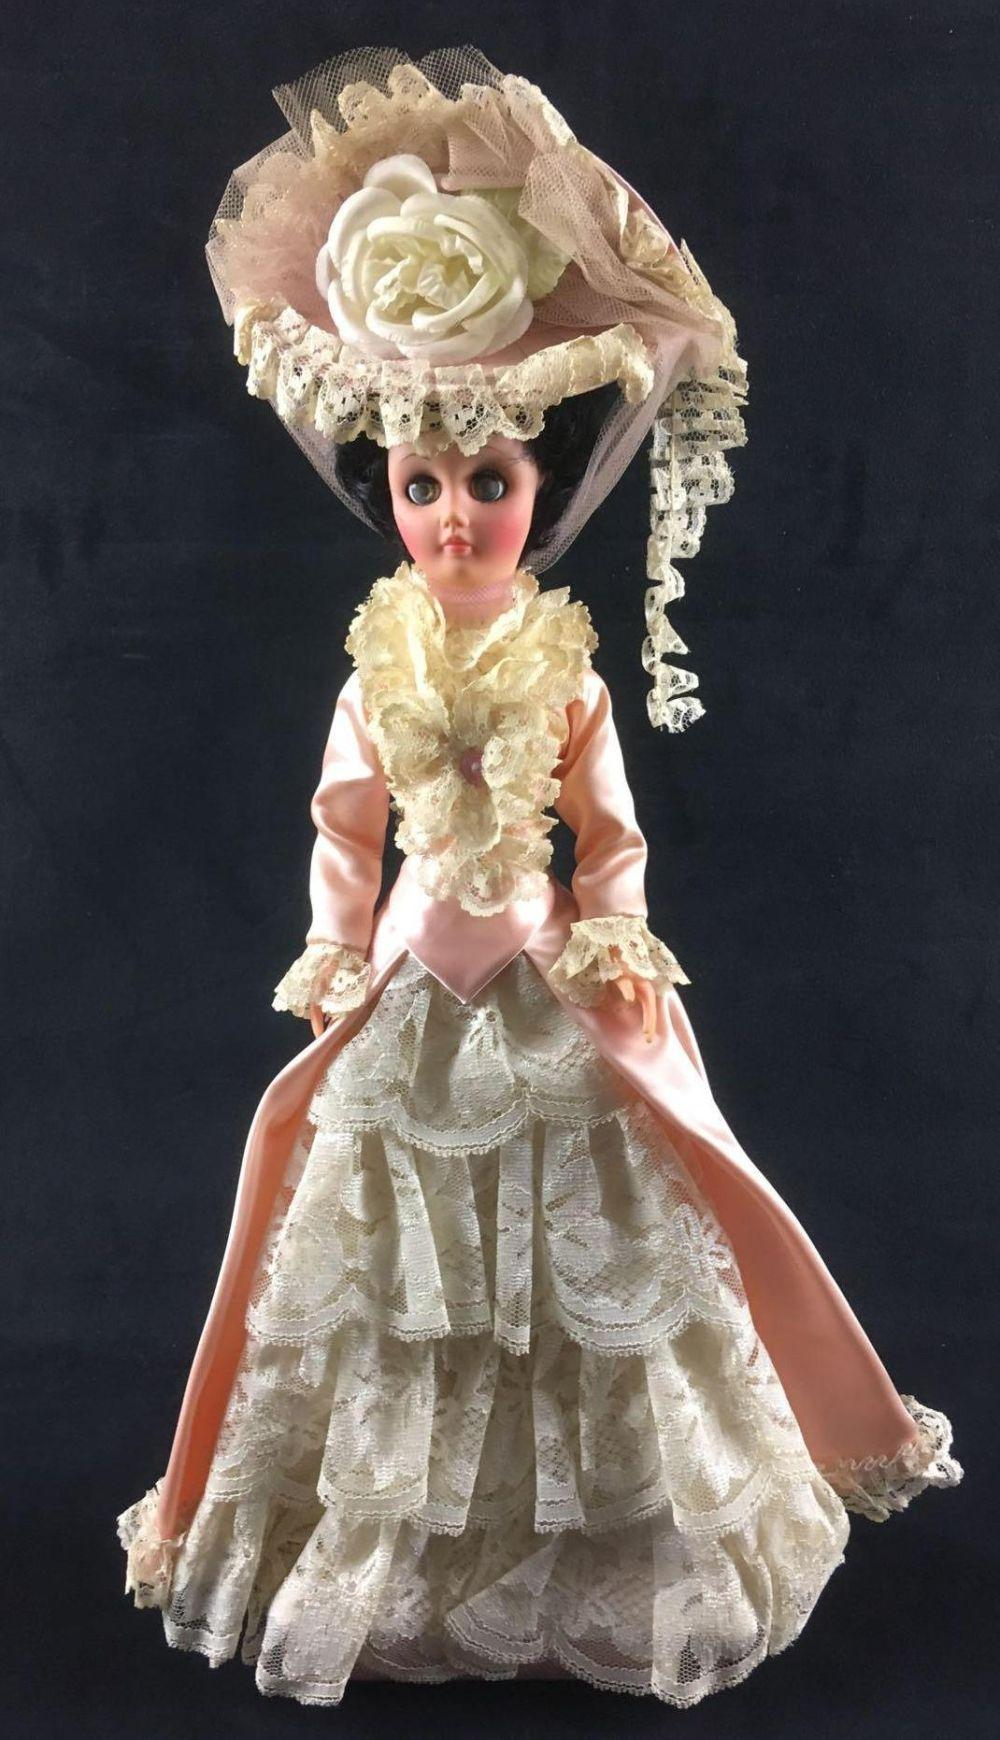 Lot 4: Victorian Lace and Satin Dress Doll